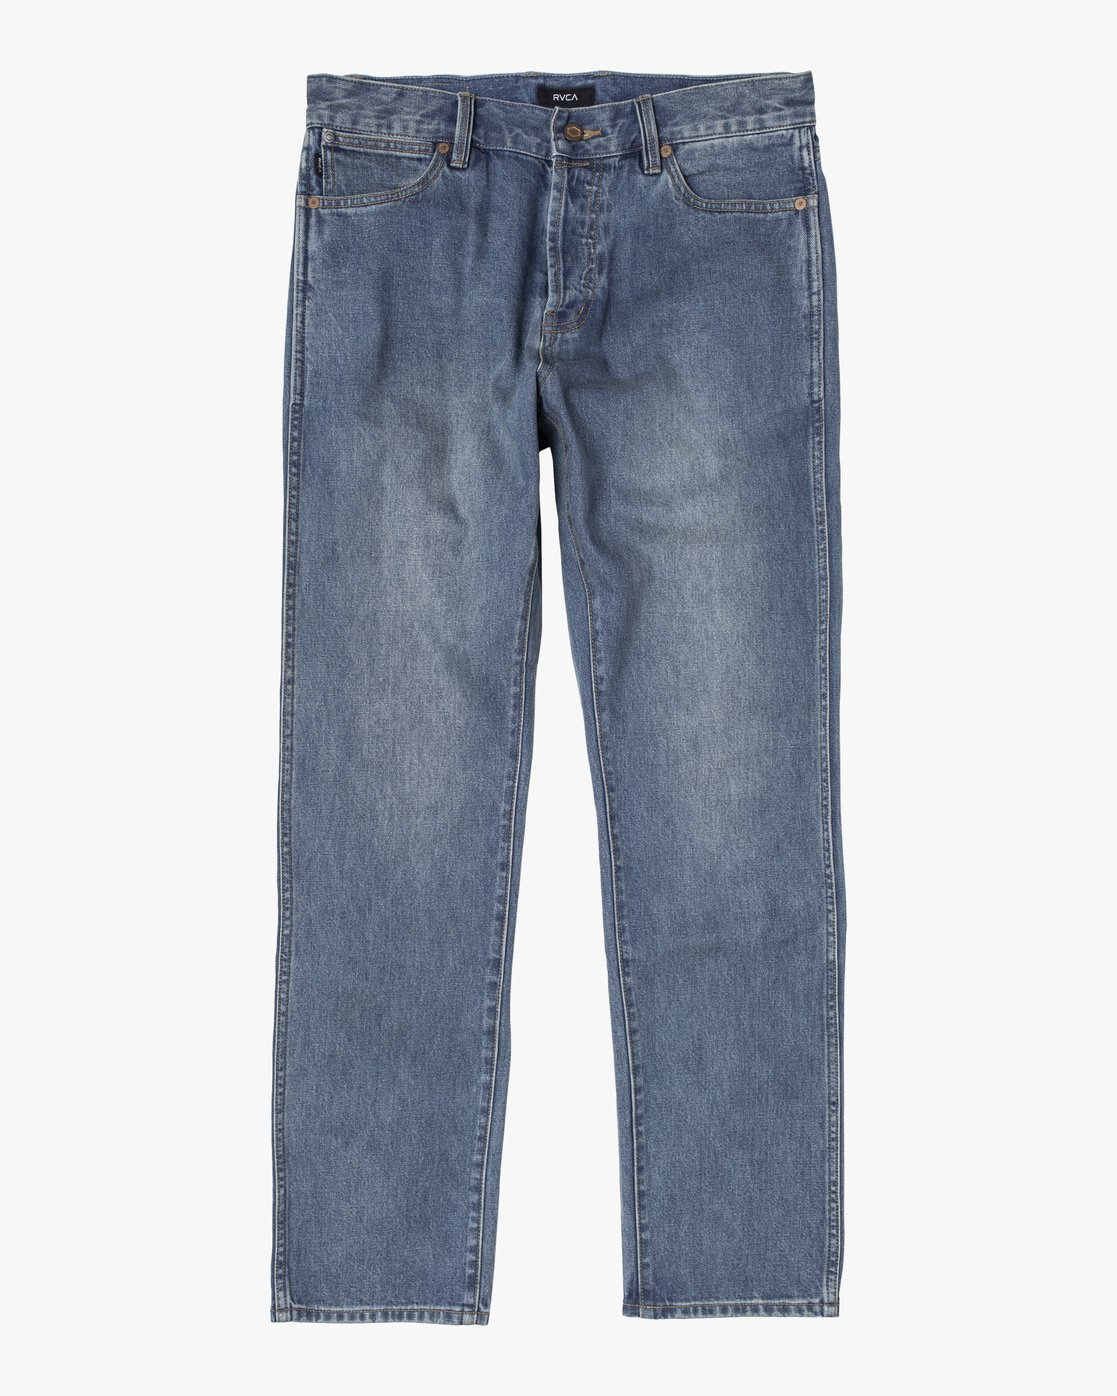 0 week-end STRAIGHT FIT DENIM Black M3103RWK RVCA